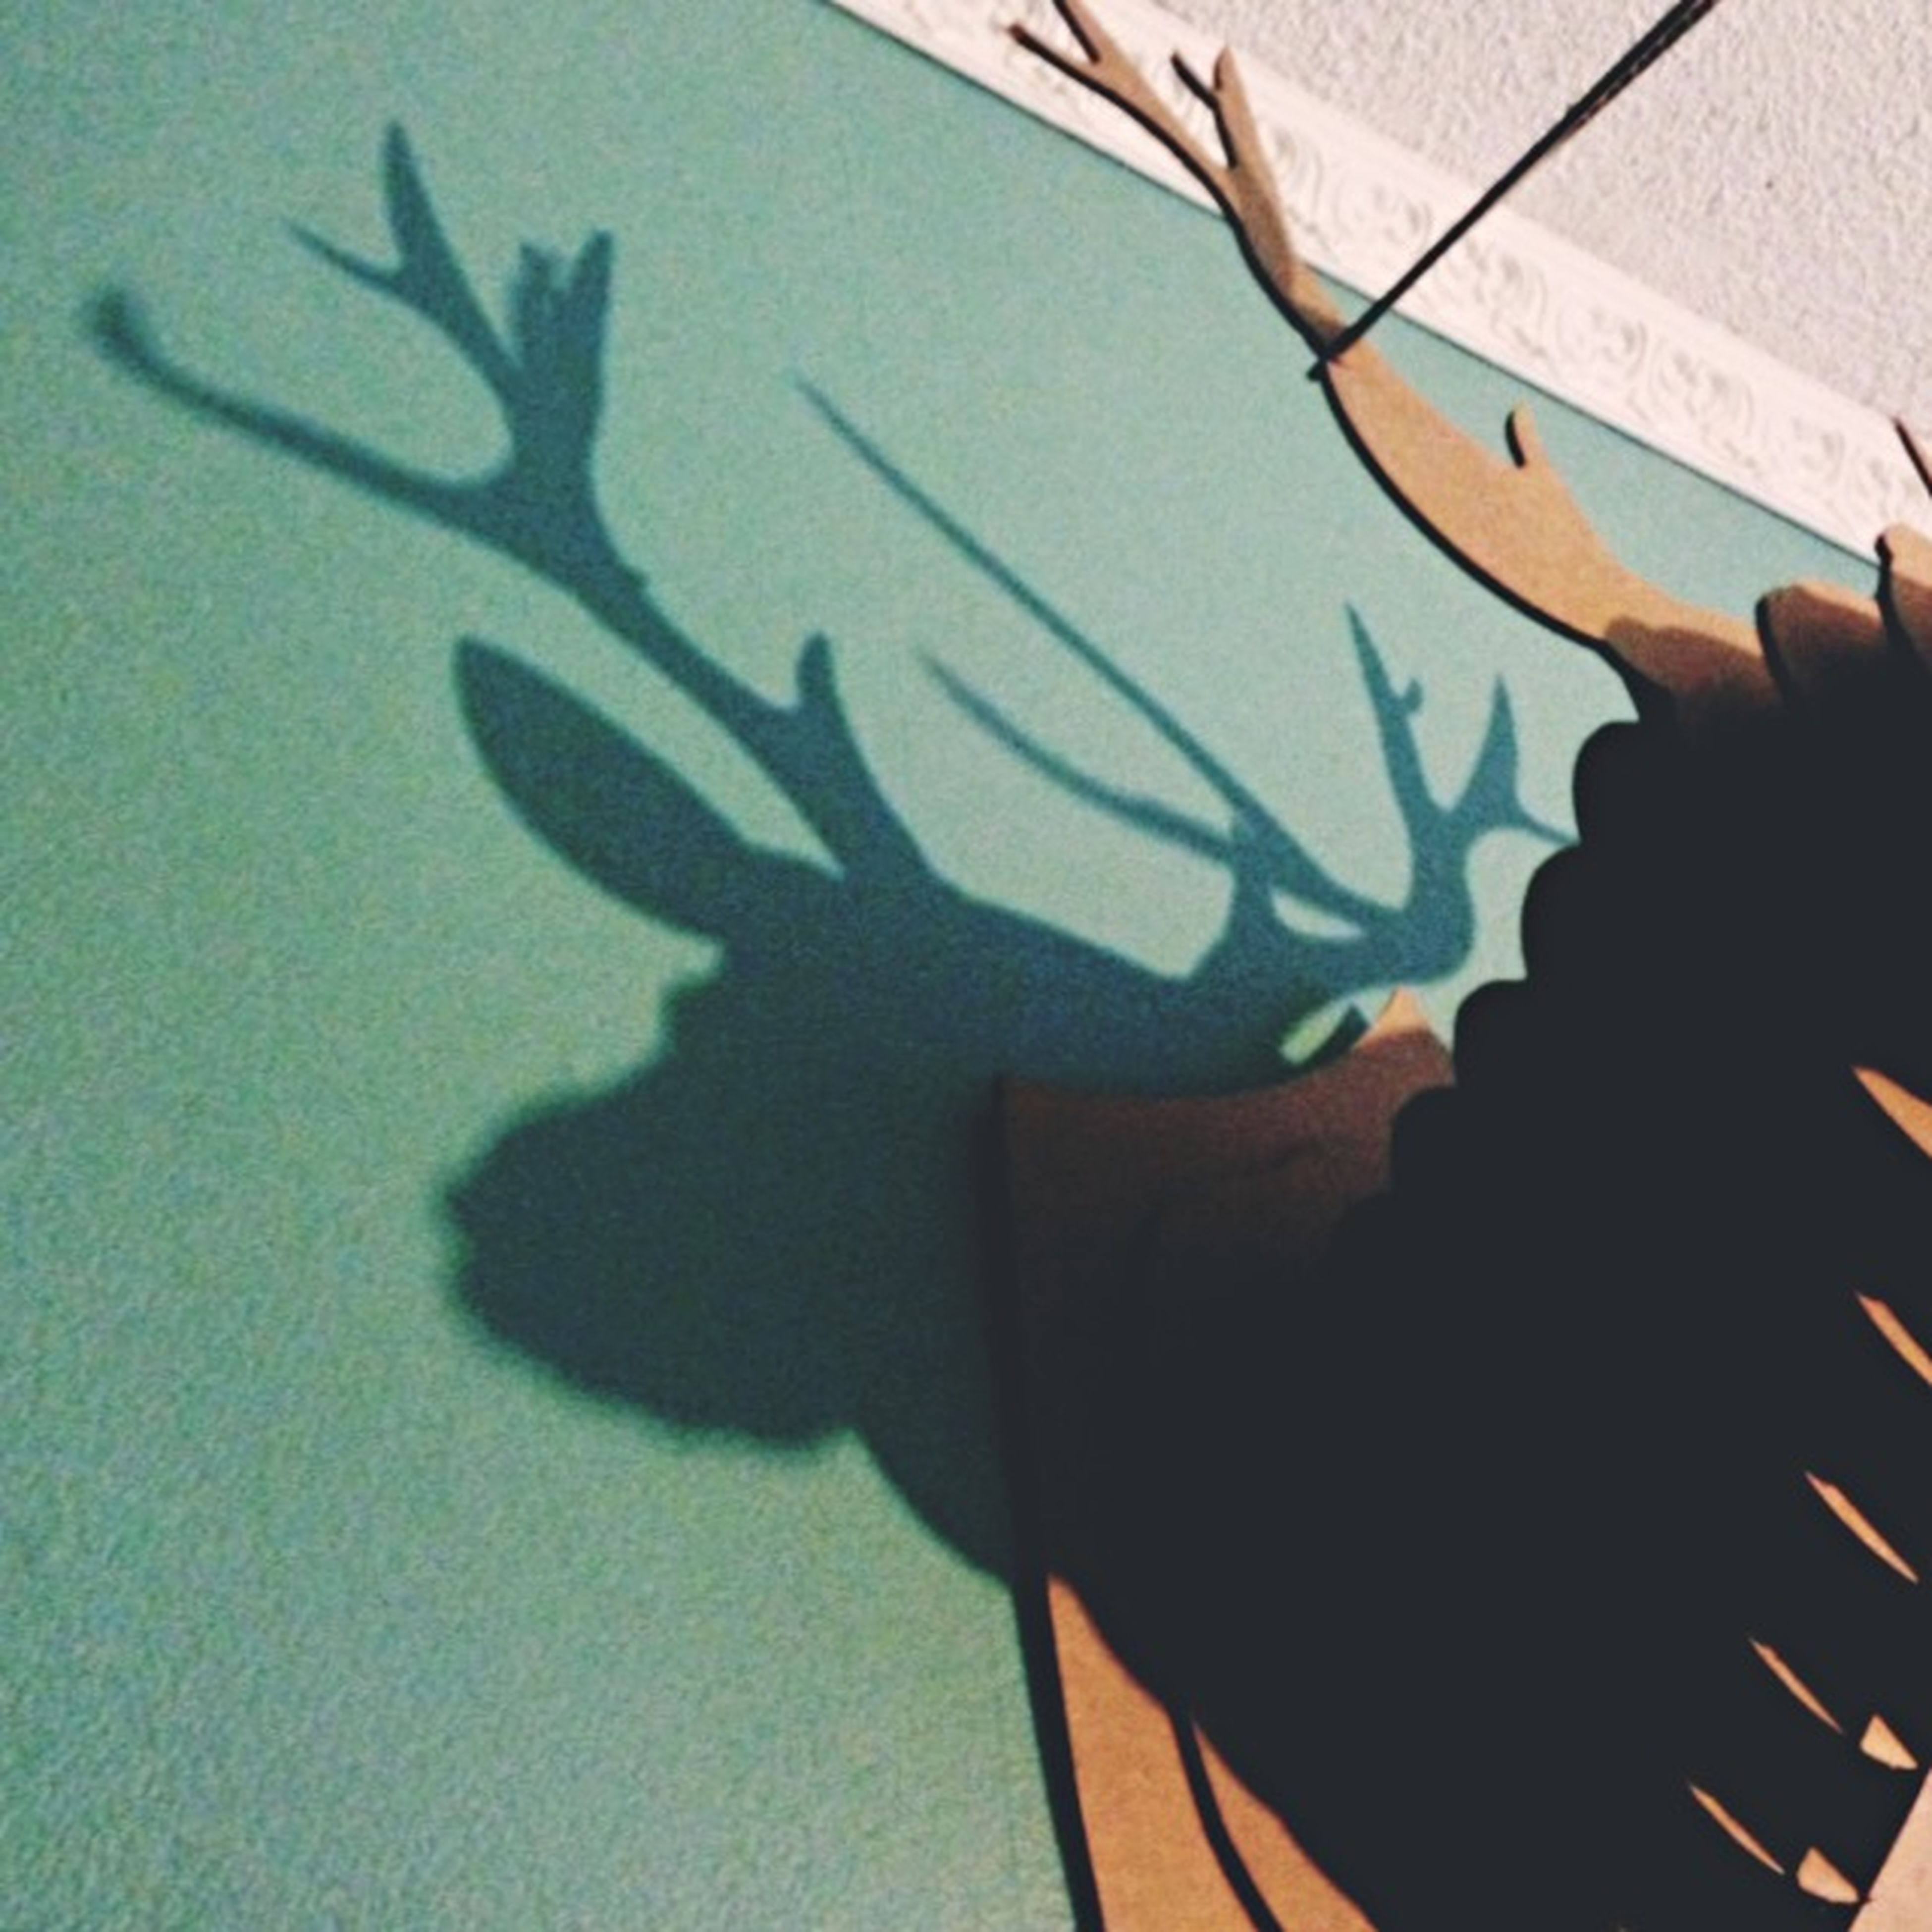 indoors, art, shadow, art and craft, creativity, high angle view, animal representation, close-up, part of, person, paper, focus on shadow, cropped, unrecognizable person, human representation, text, sunlight